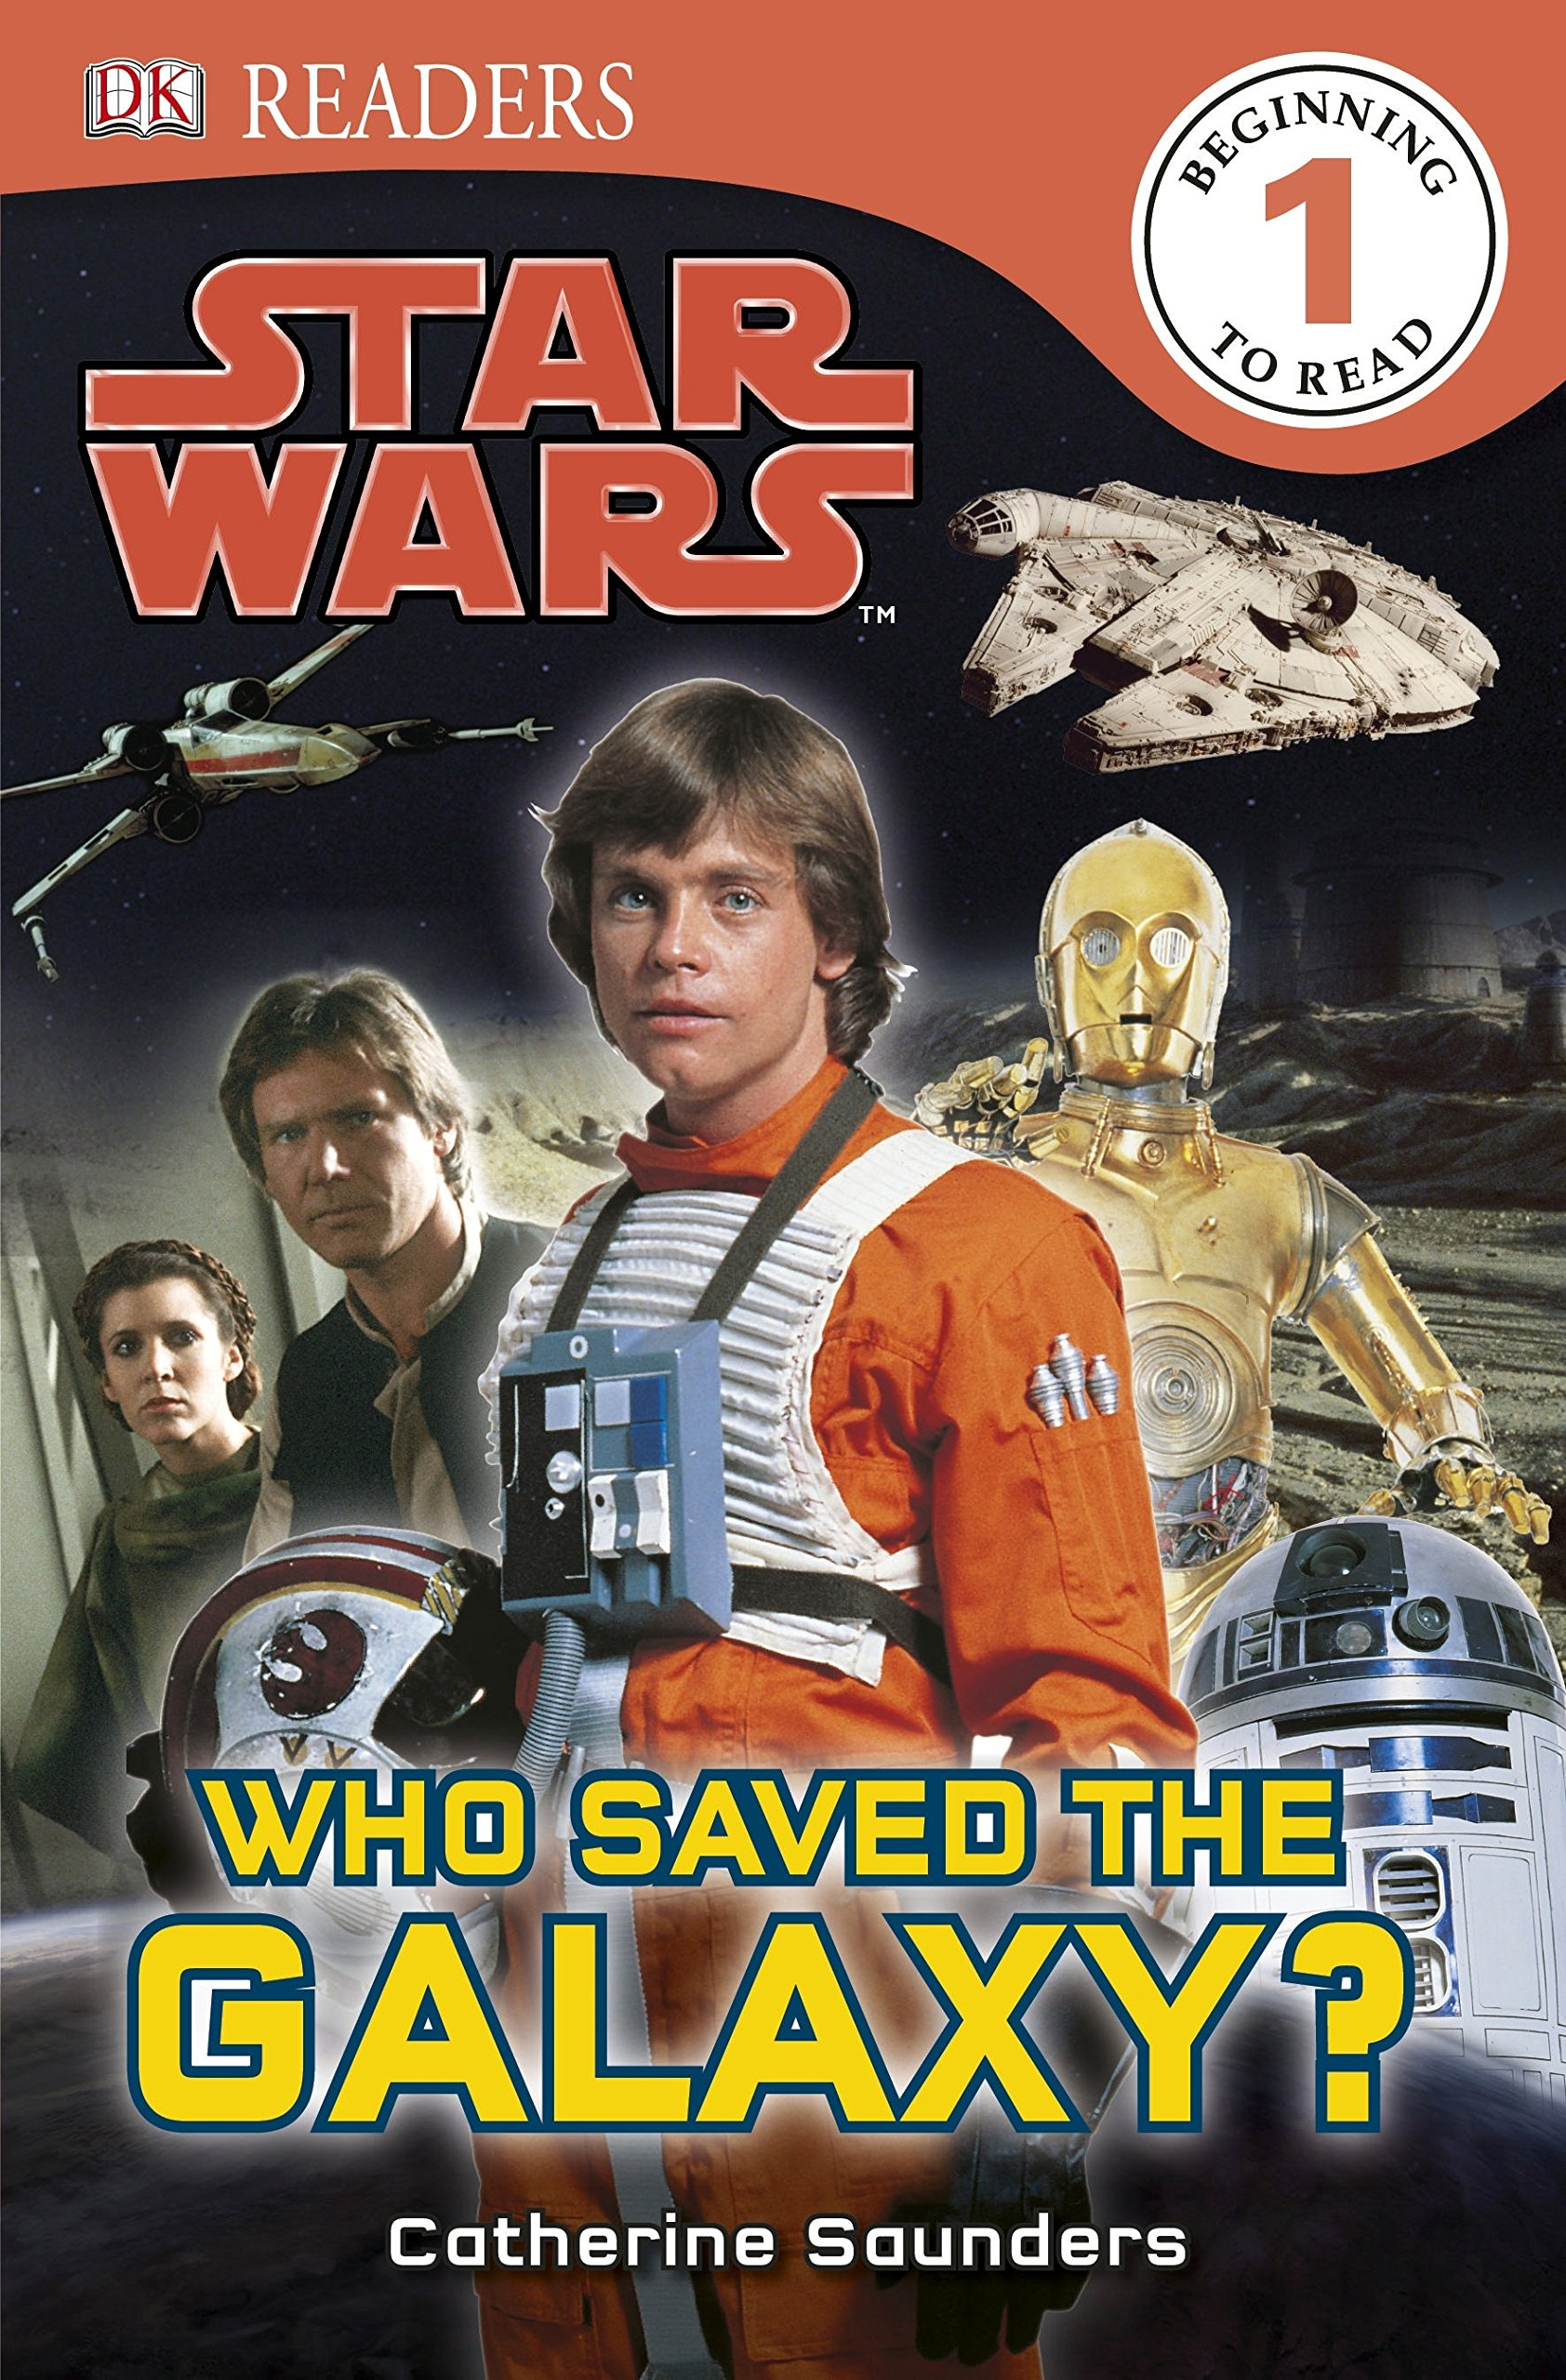 Star Wars Who Saved the Galaxy? (DK Readers Level 1) ebook